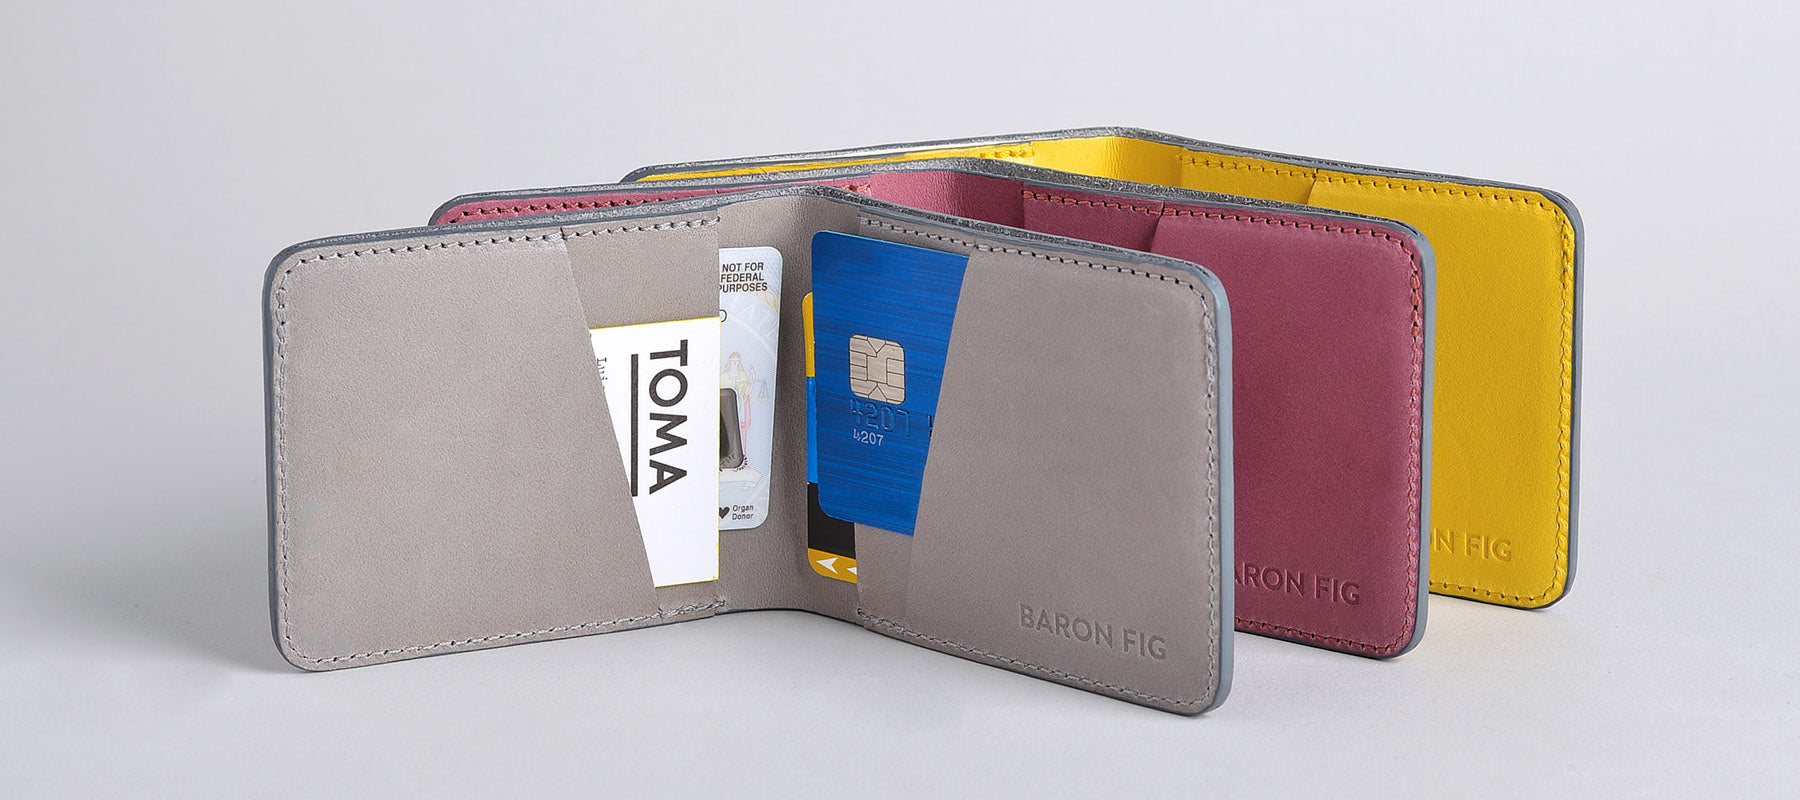 Slim bifold wallets in charcoal, fig wine, and yellowgold